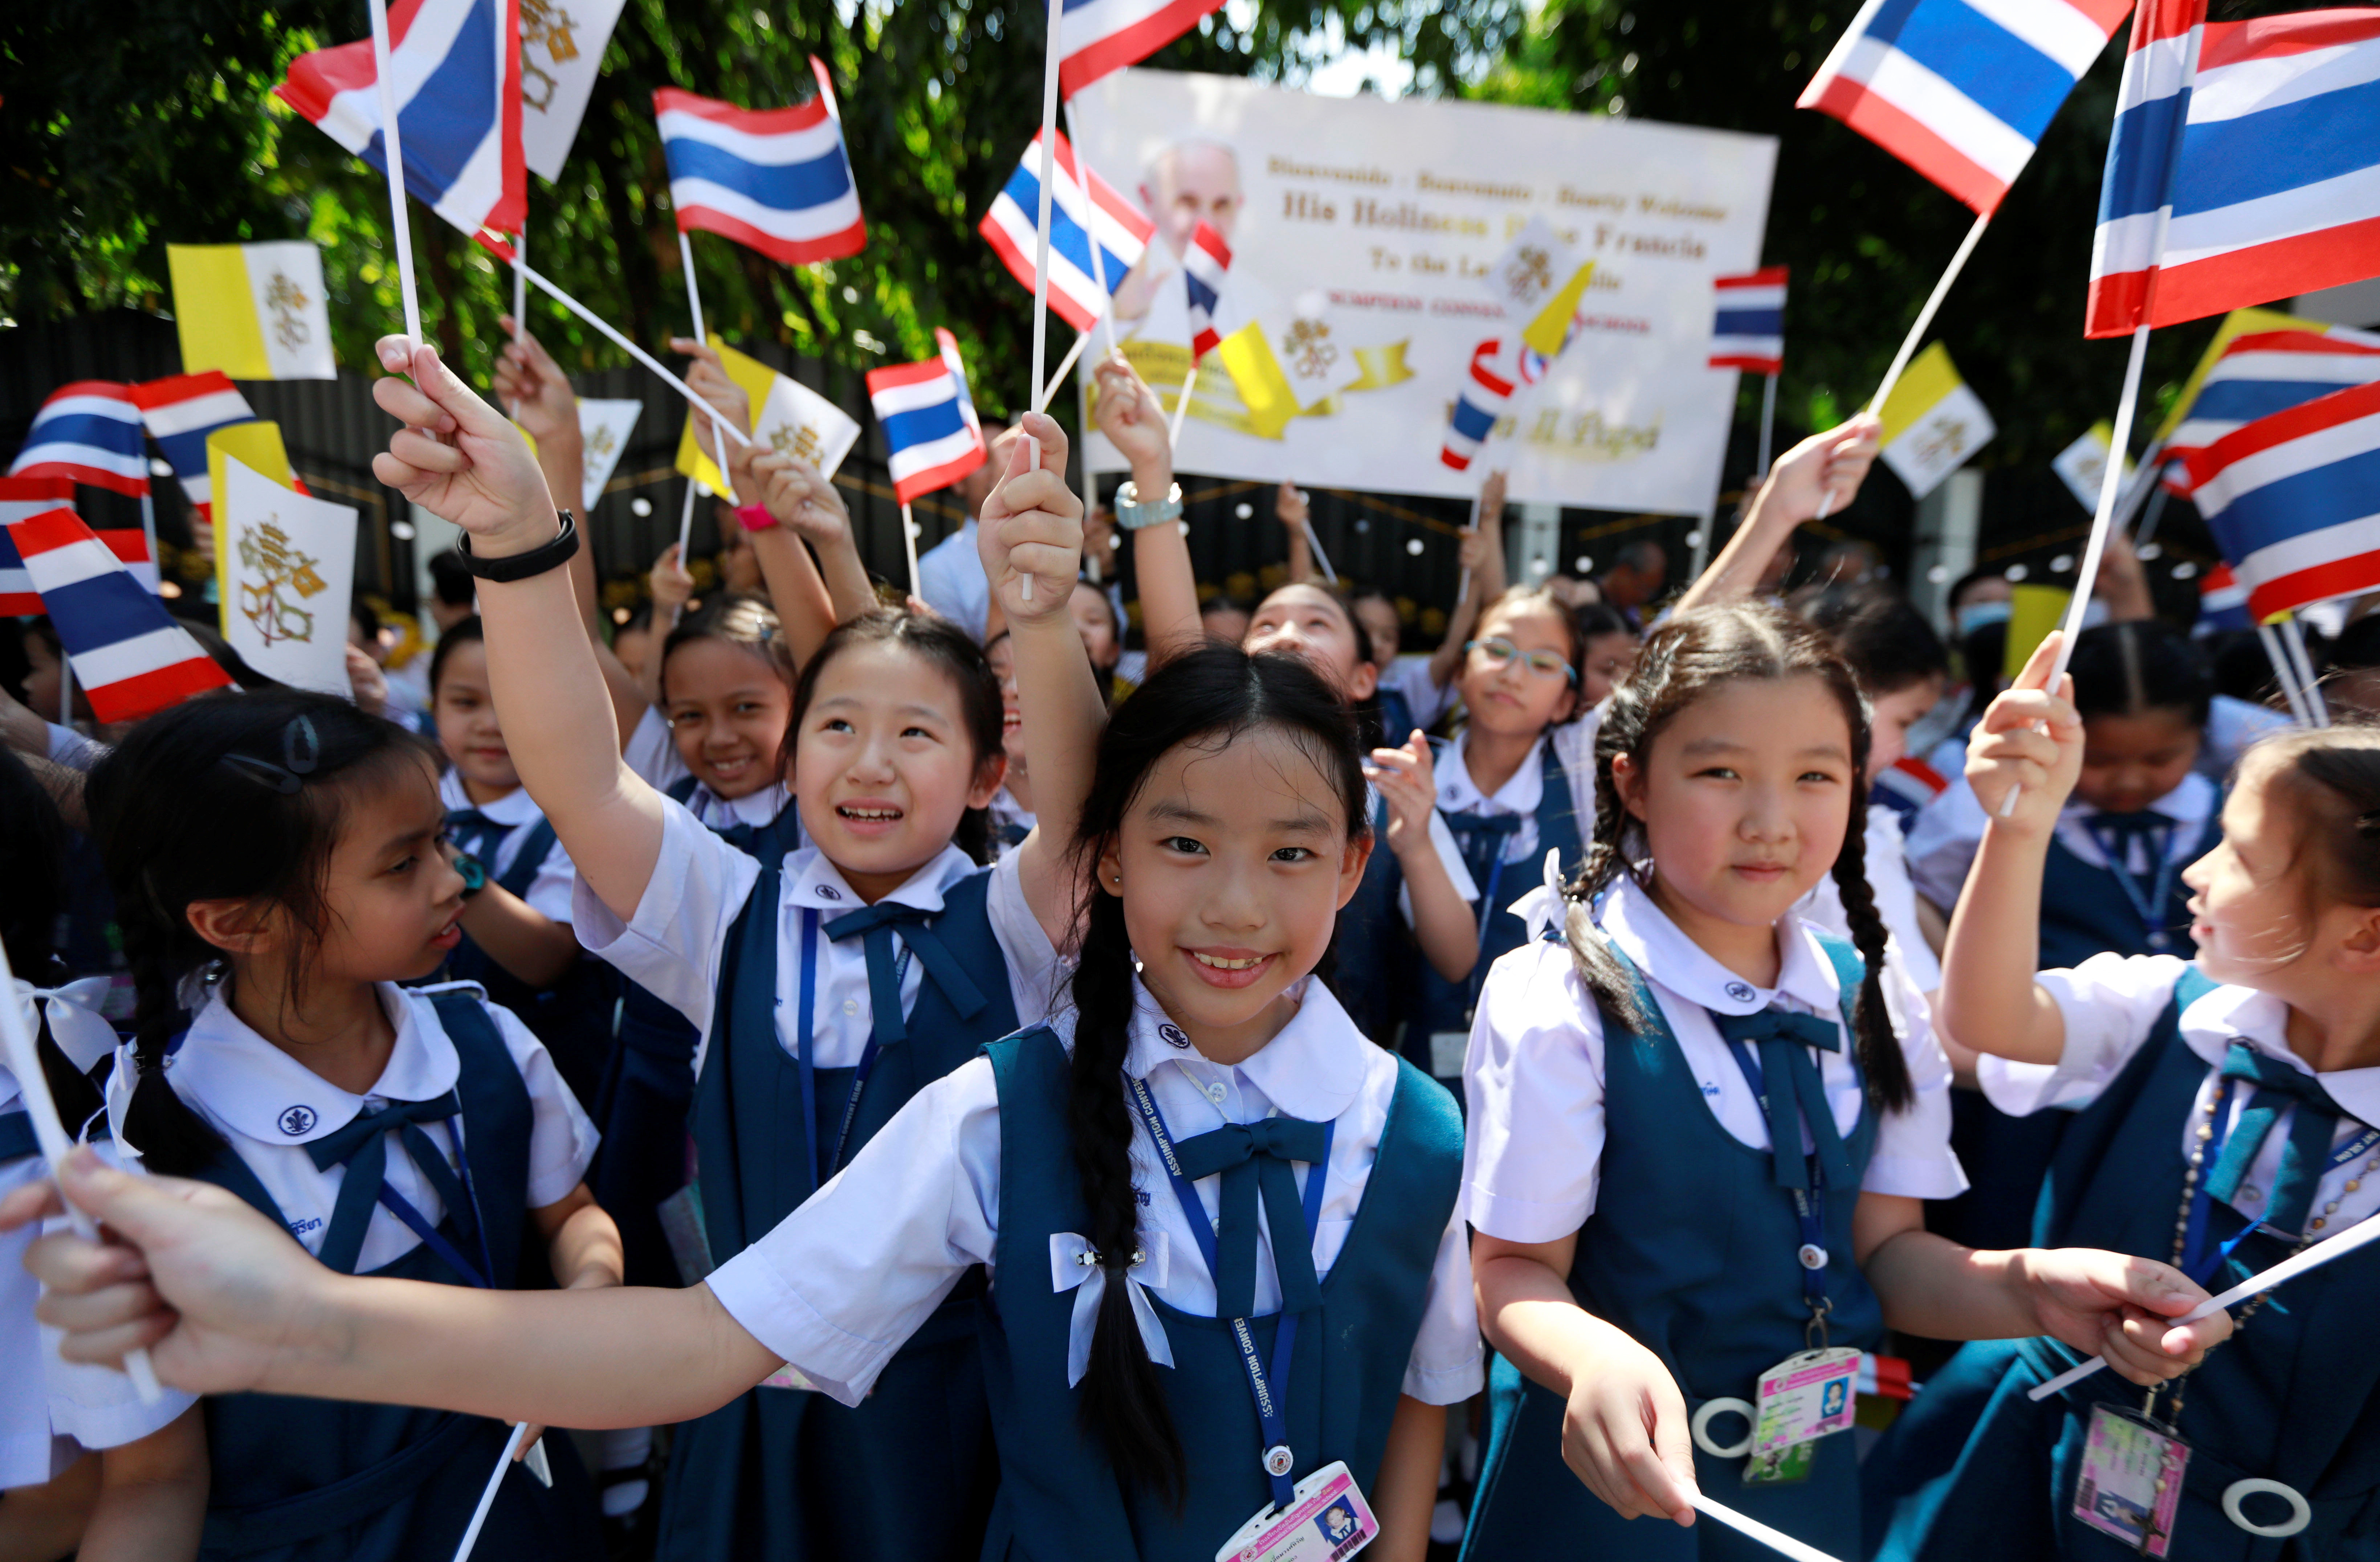 Well-wishers wave flags while waiting for the arrival of Pope Francis in Bangkok, Thailand.